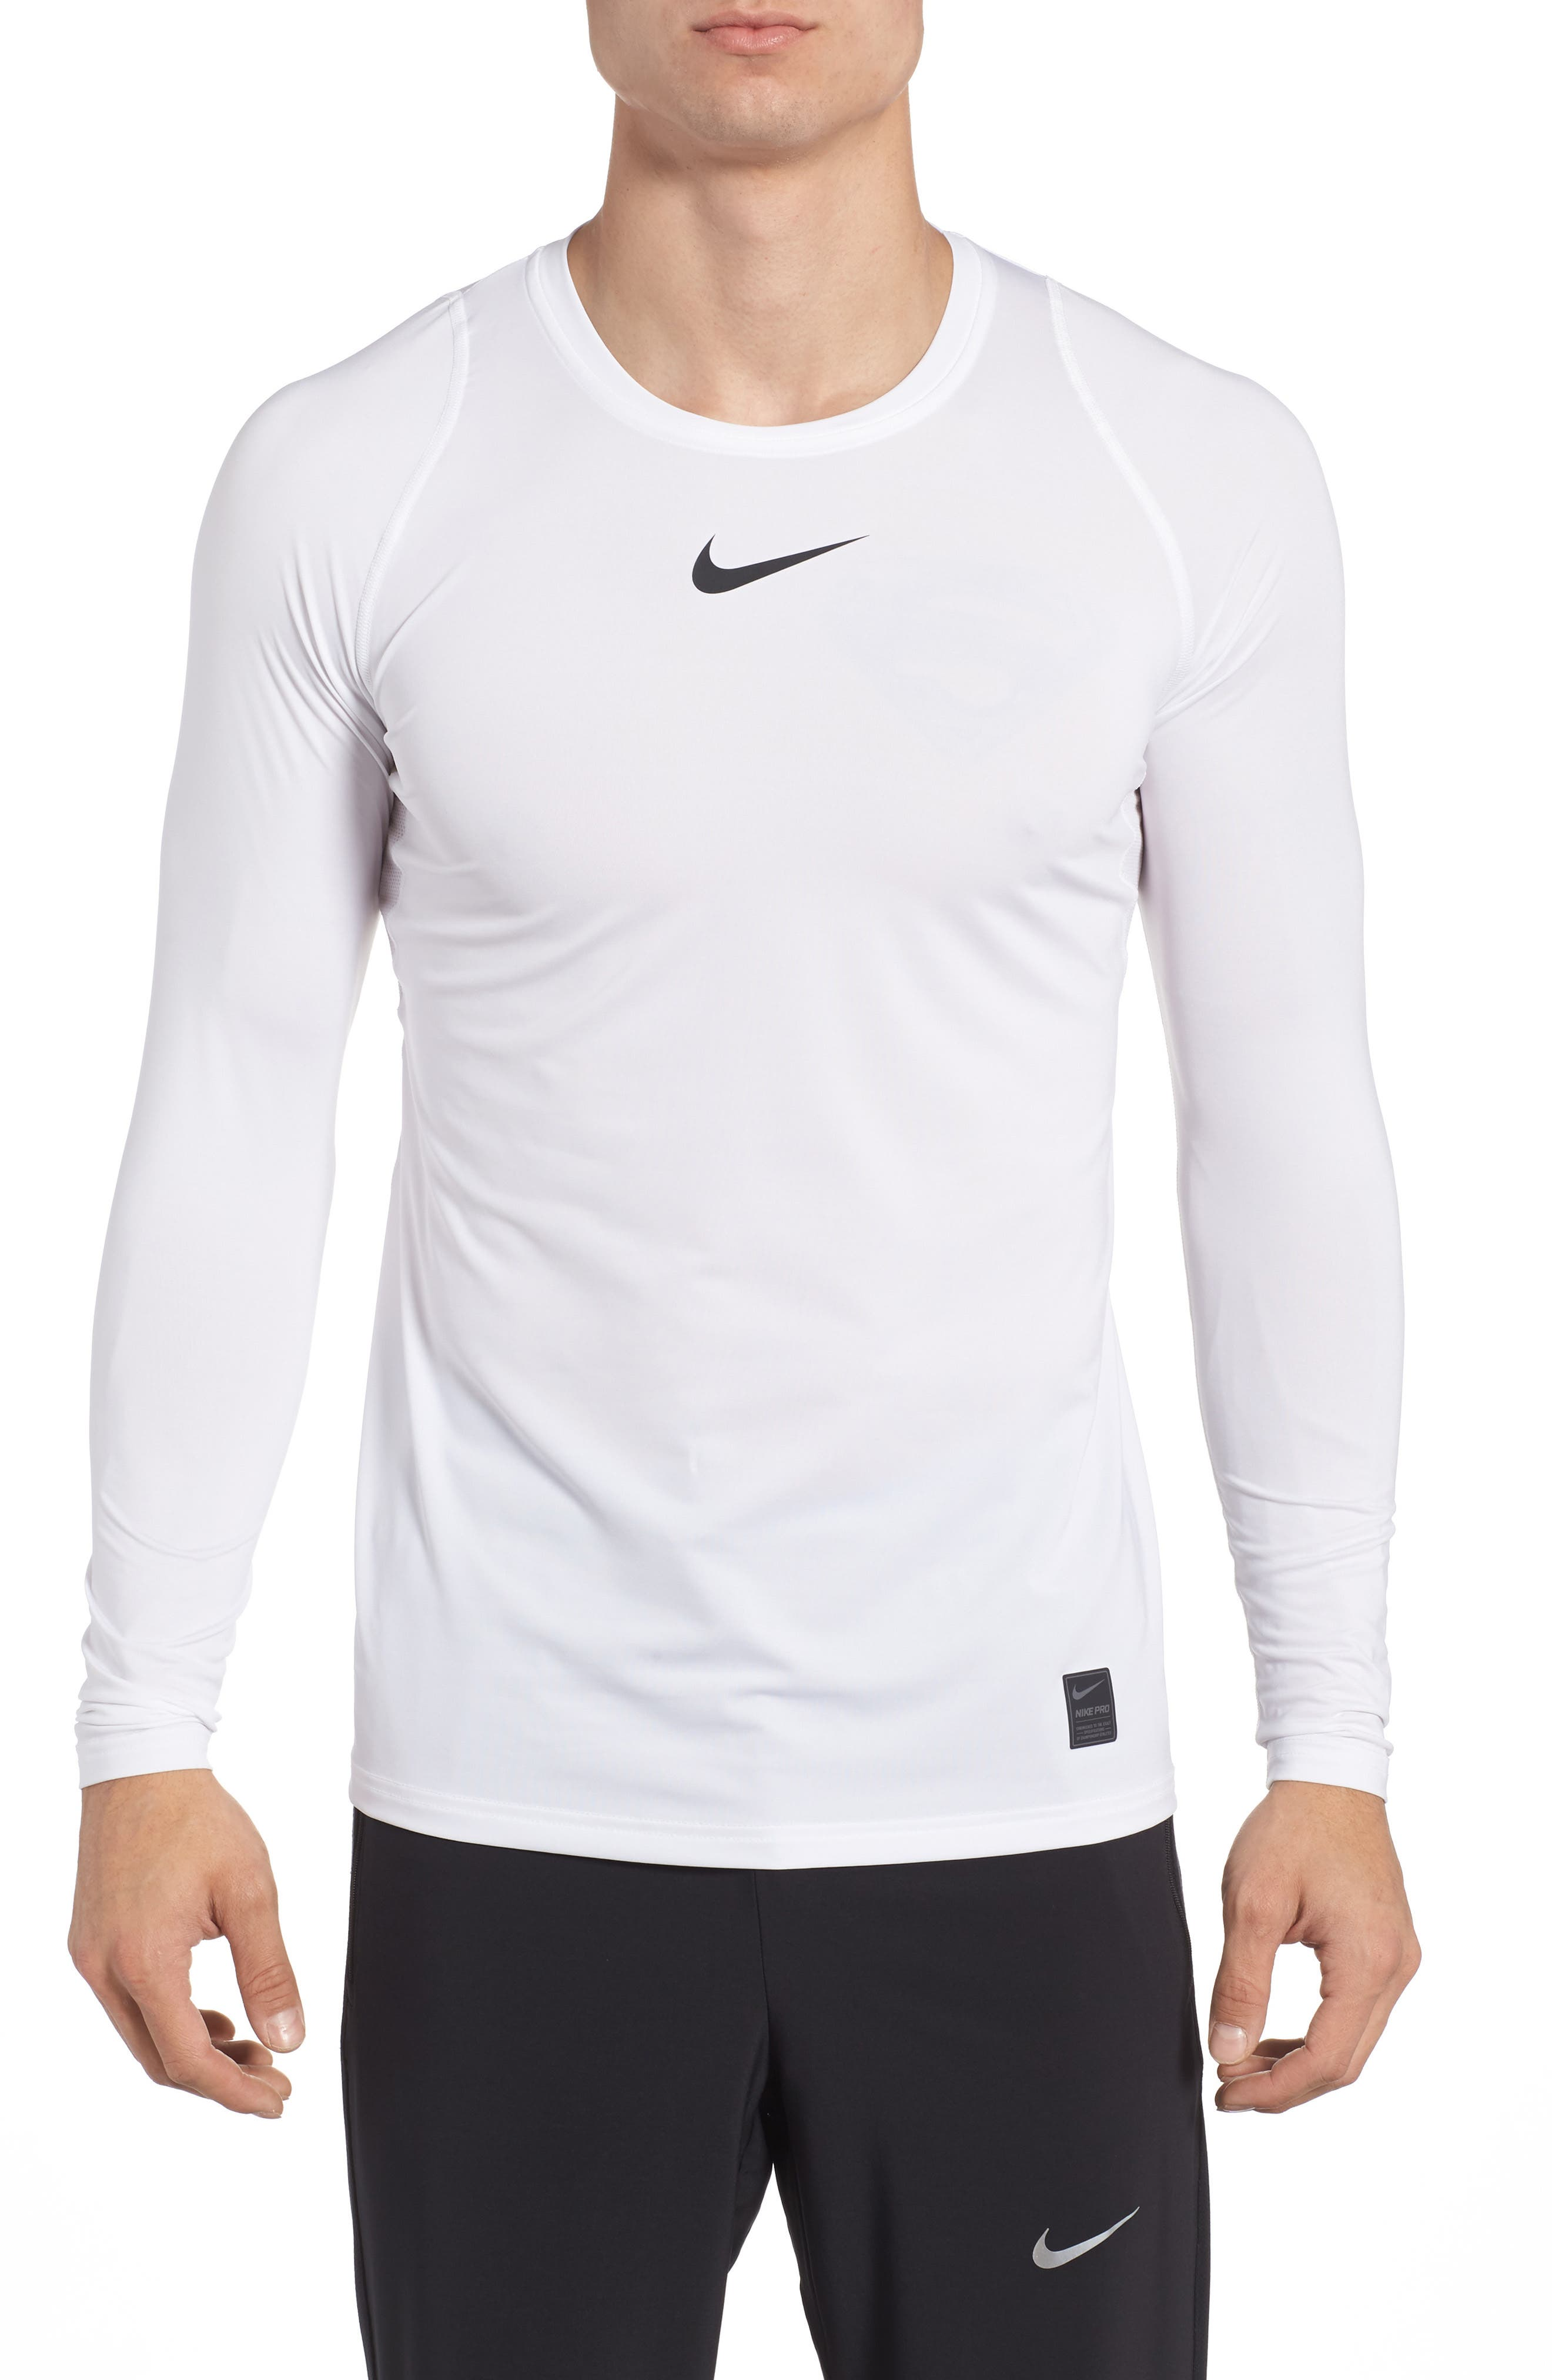 Nike Pro Fitted Performance T-Shirt (Regular Retail Price: $35.00)